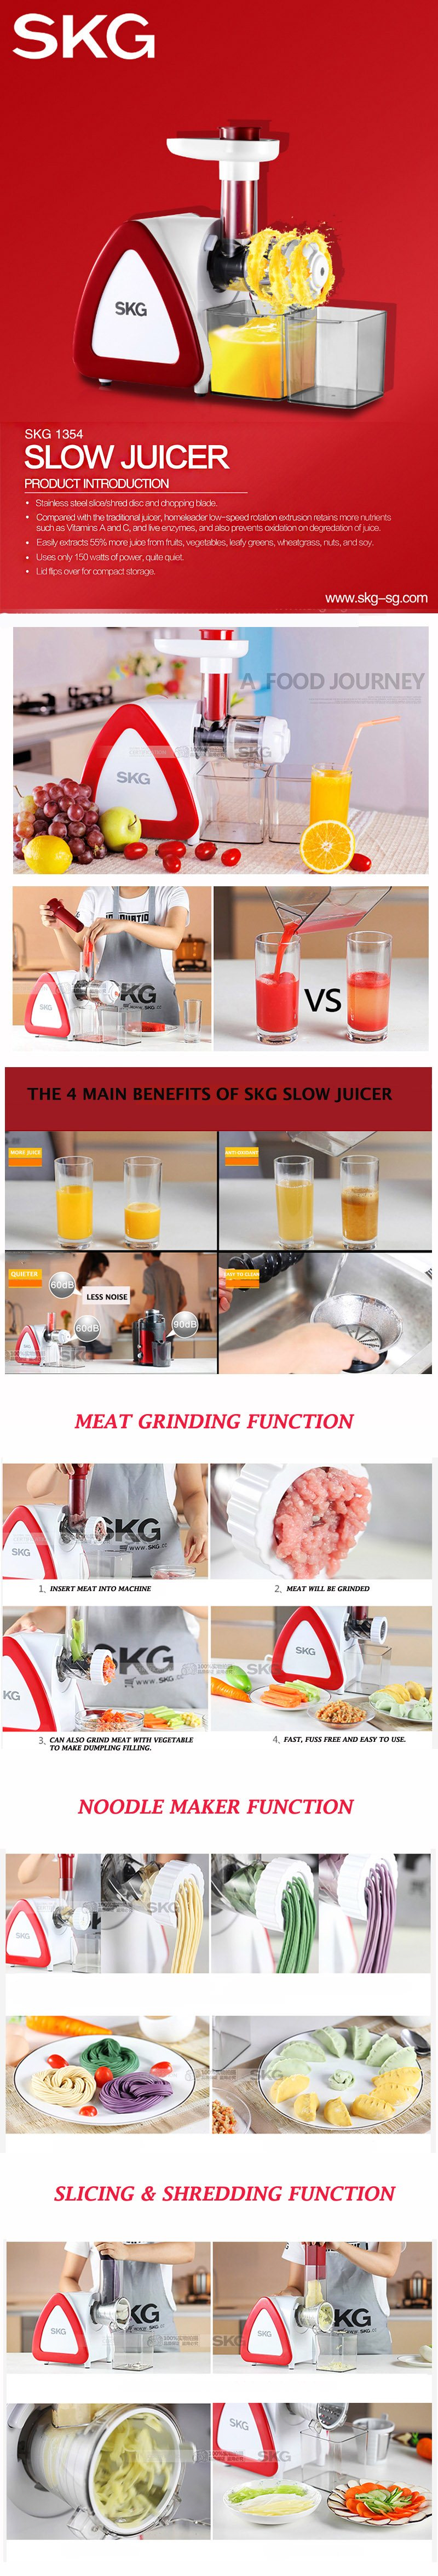 SKG 1354 Slow Juicer 7 IN 1 Multi Function Deals for only S$88.9 instead of S$199